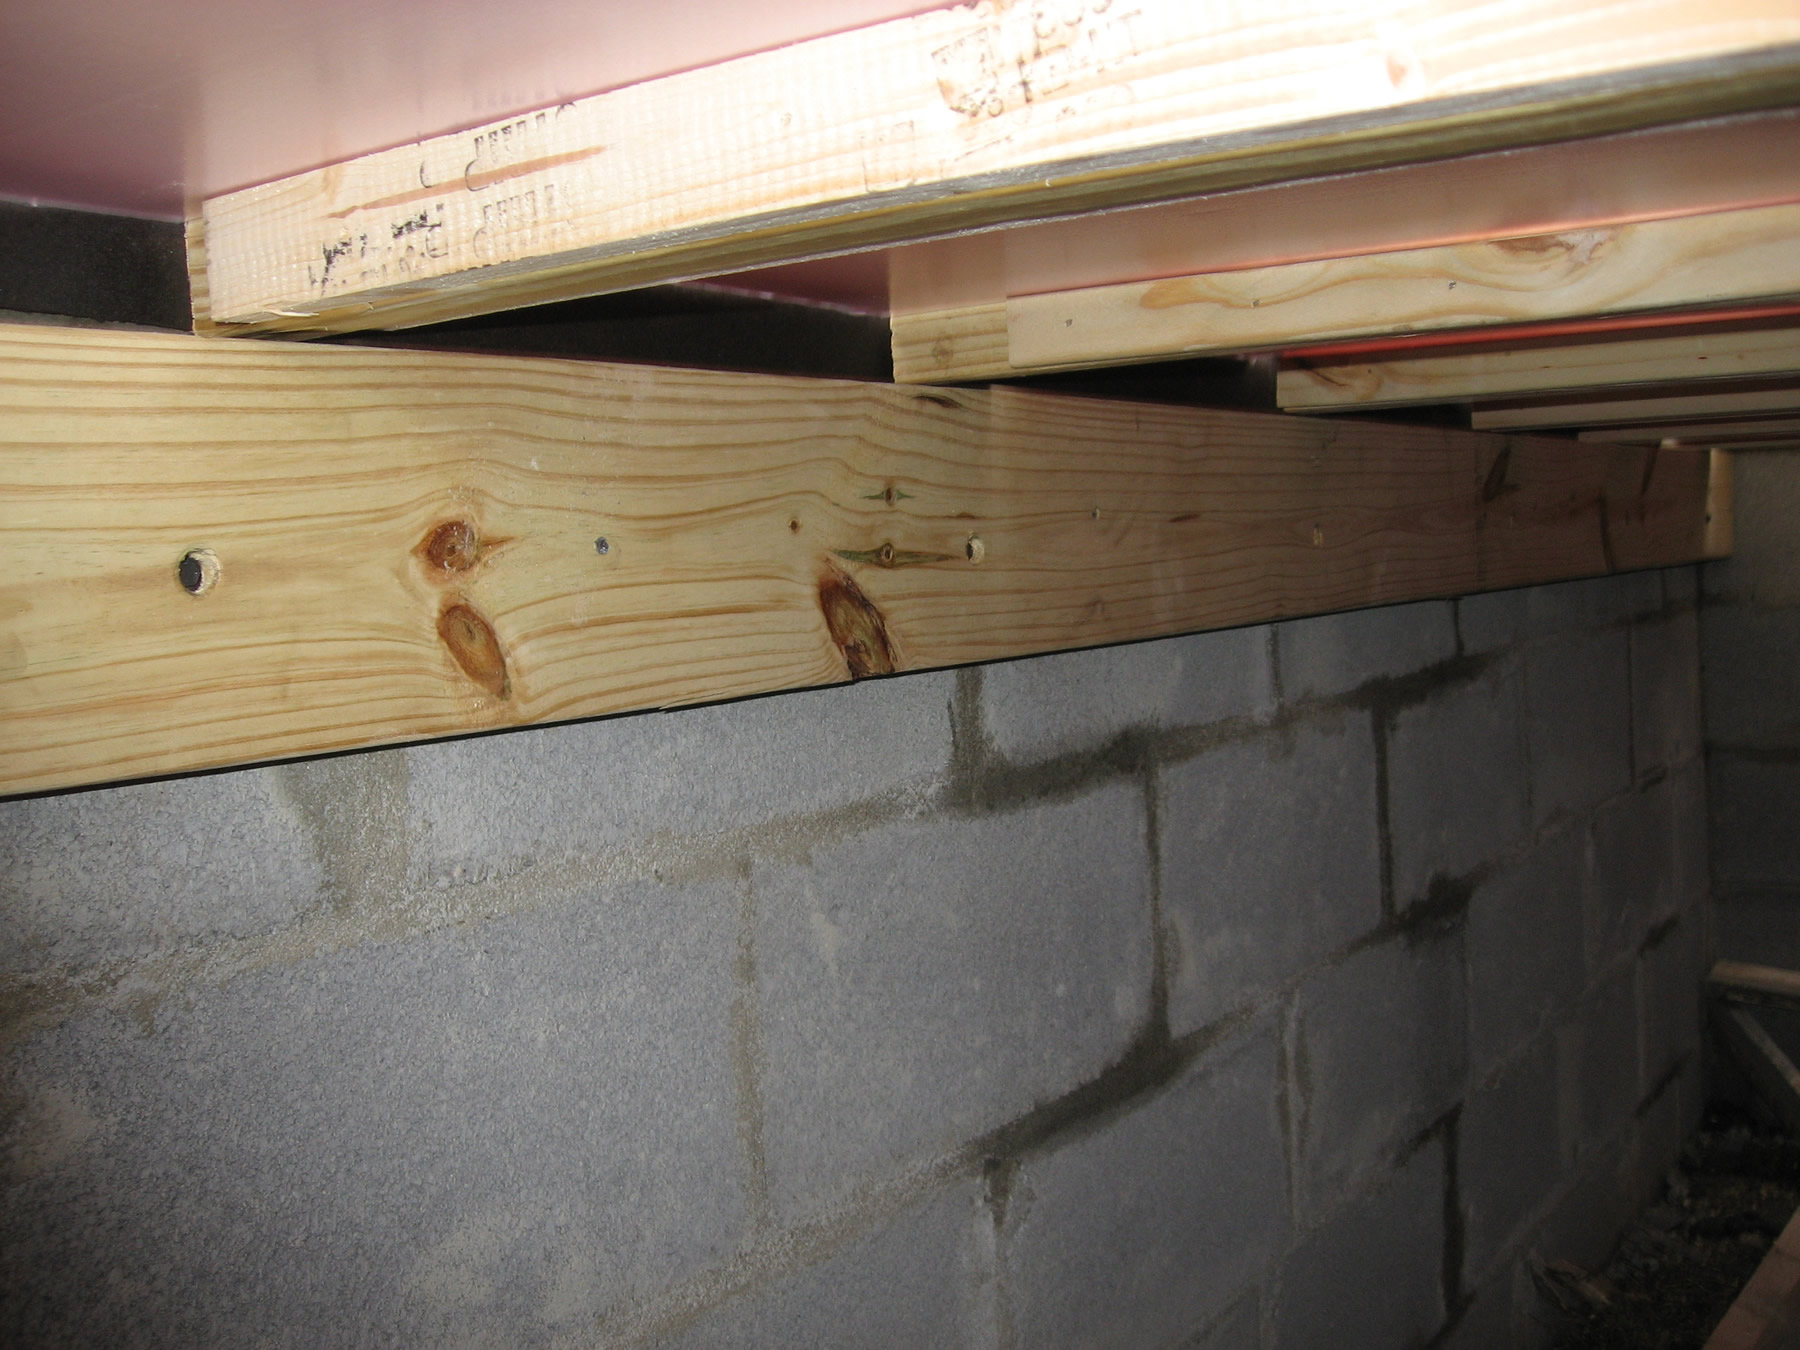 Closet Foundation With Ledger Project: Adding Closets To The Log Cabin    Inside The Foundation Of The Closet.